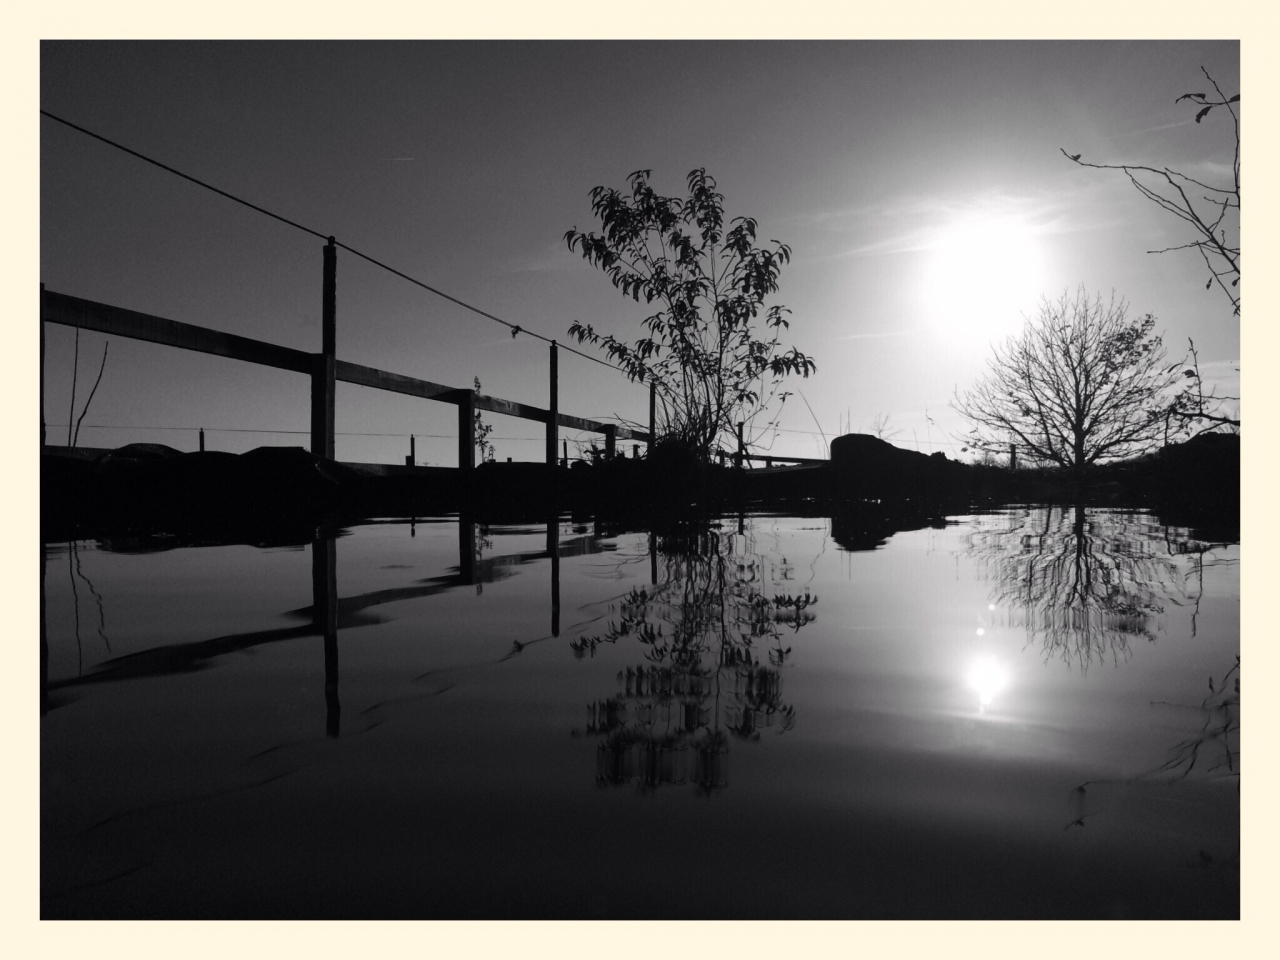 iPhone 5s ,snapseed , mobimono 106 , by Neil Booth .